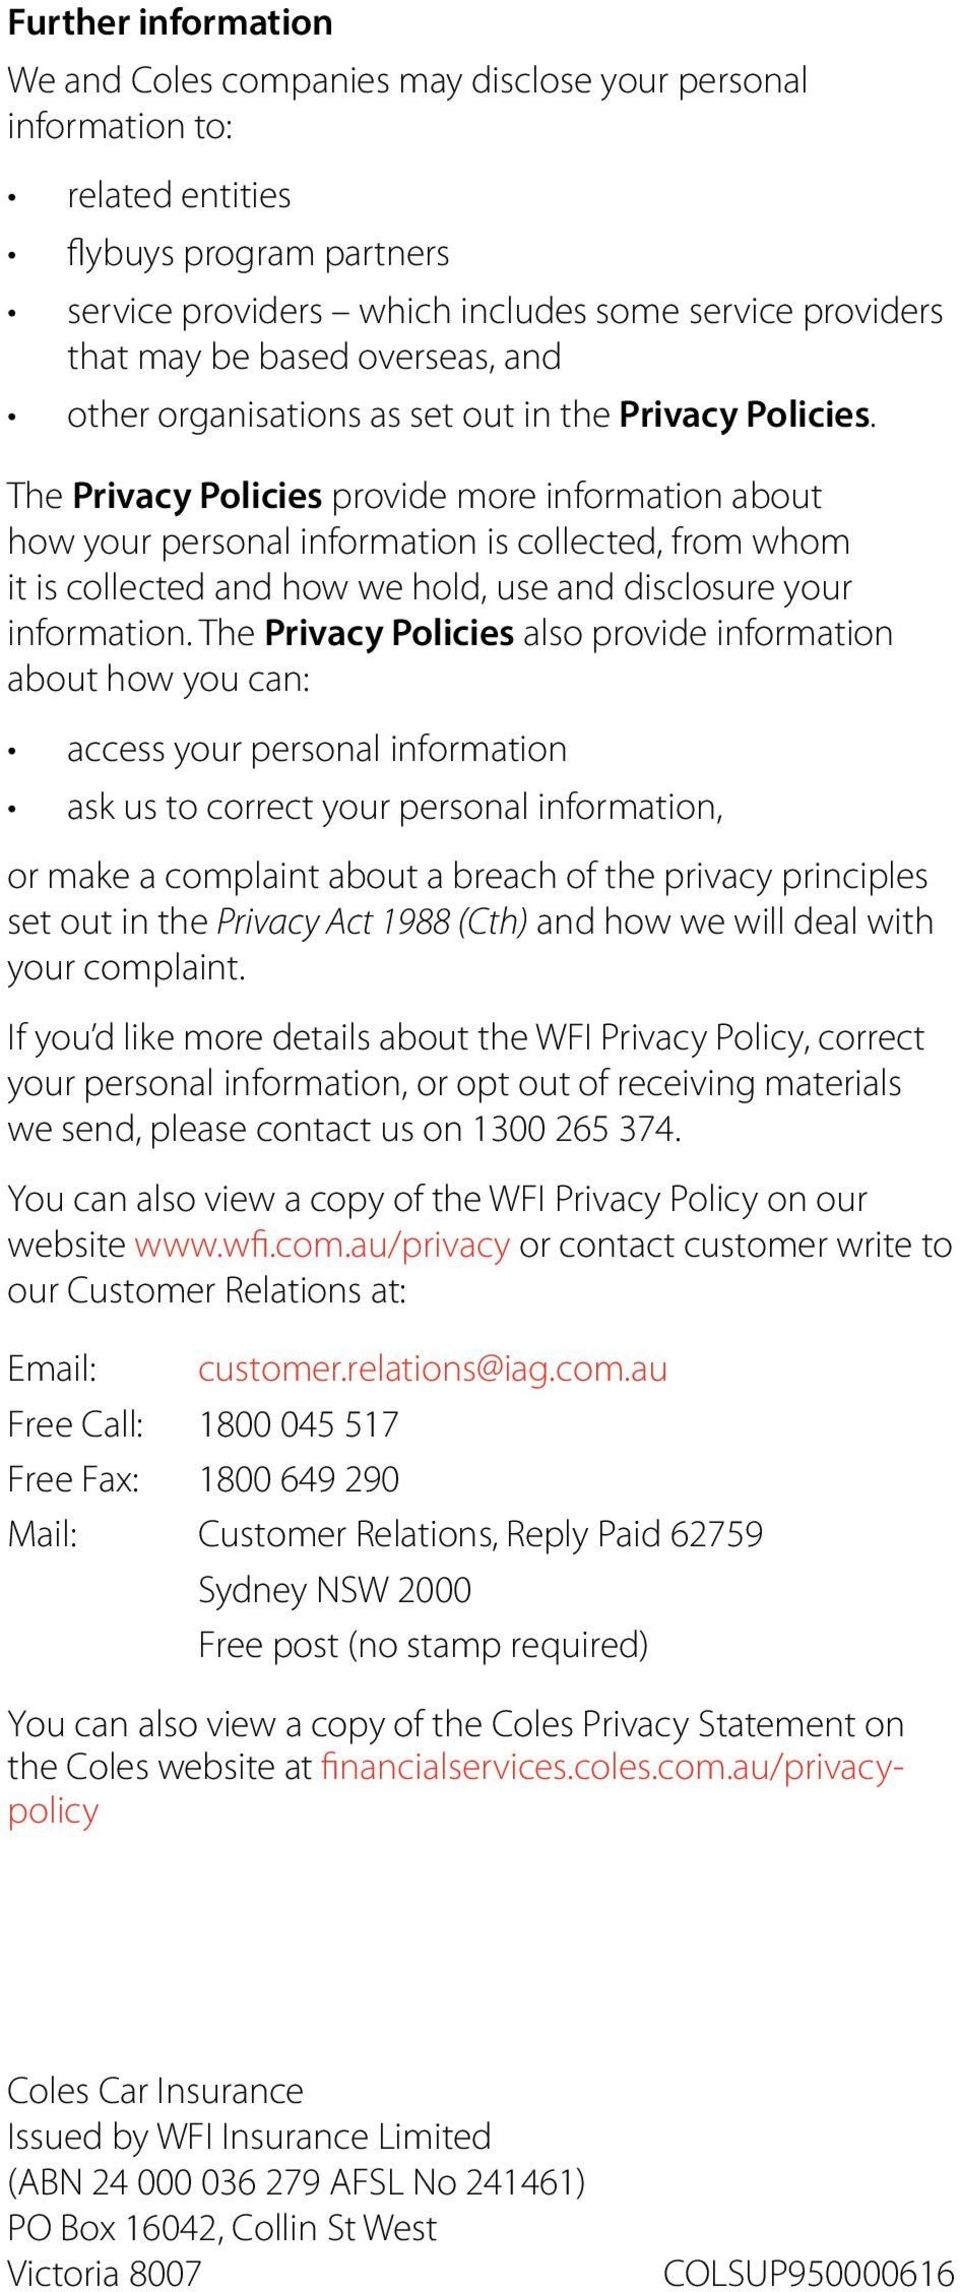 The Privacy Policies provide more information about how your personal information is collected, from whom it is collected and how we hold, use and disclosure your information.